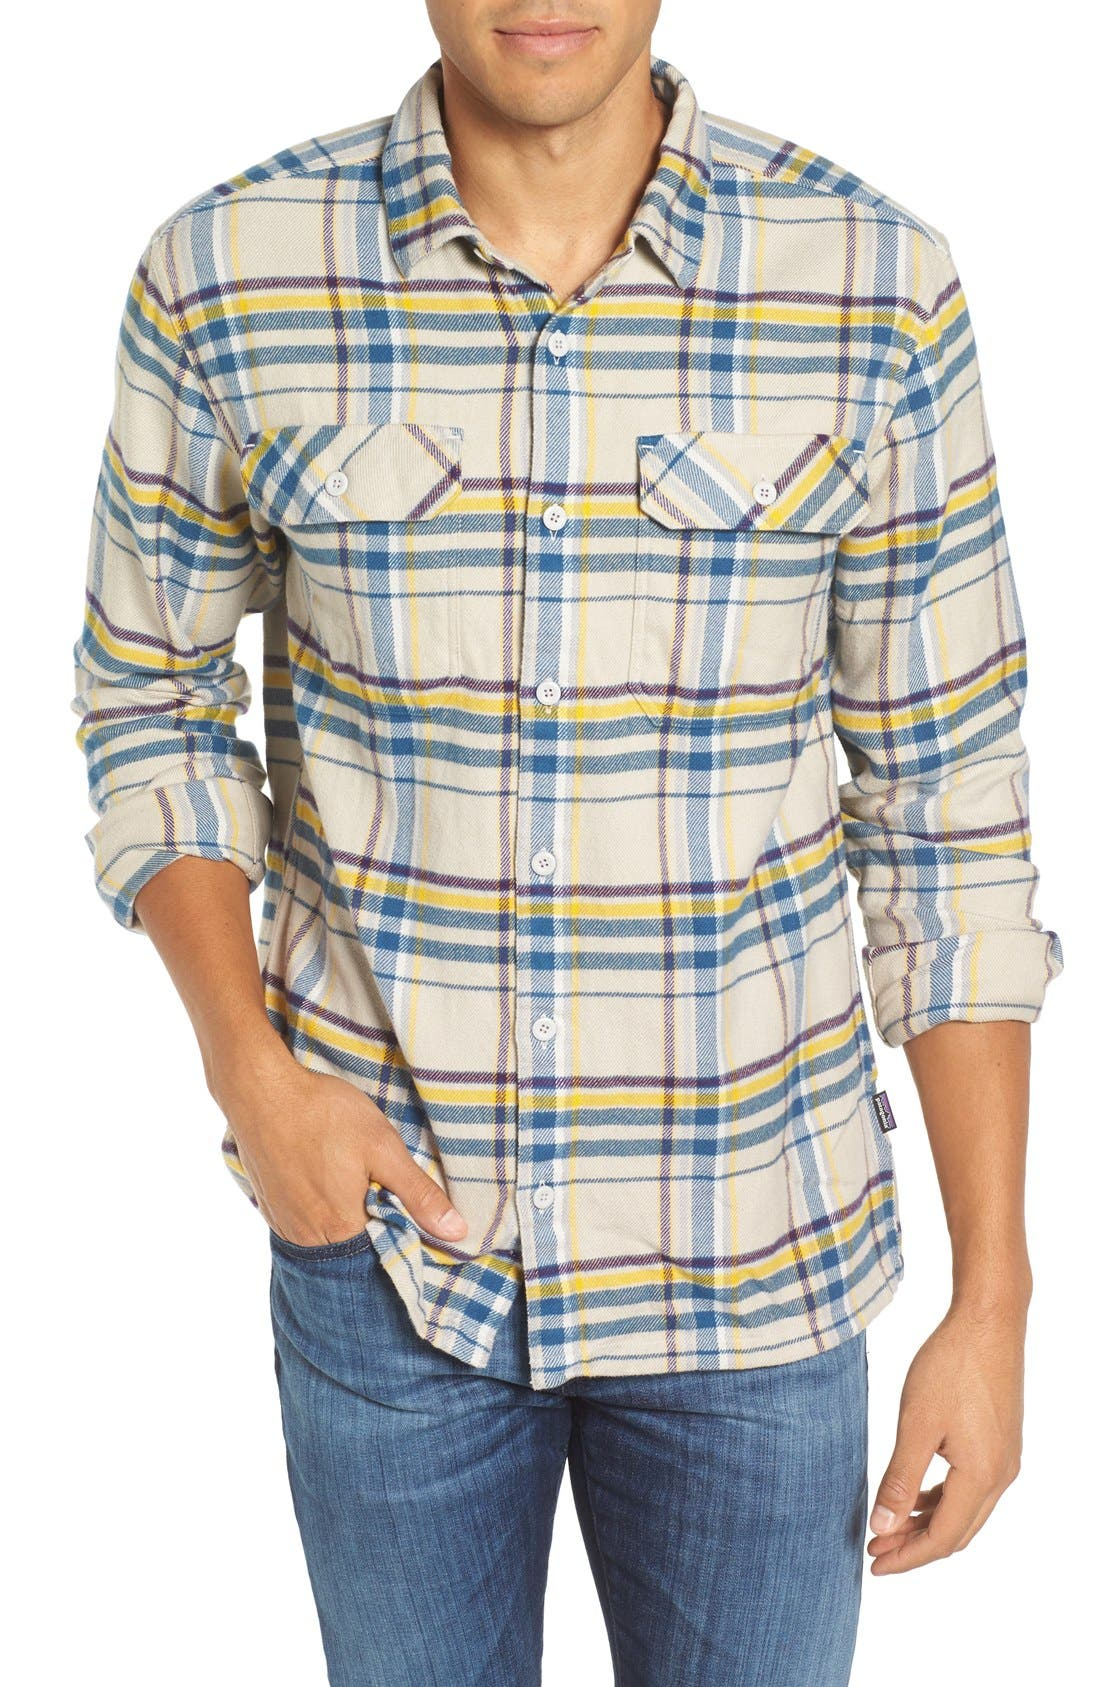 Alternate Image 1 Selected - Patagonia 'Fjord' Regular Fit Organic Cotton Flannel Shirt